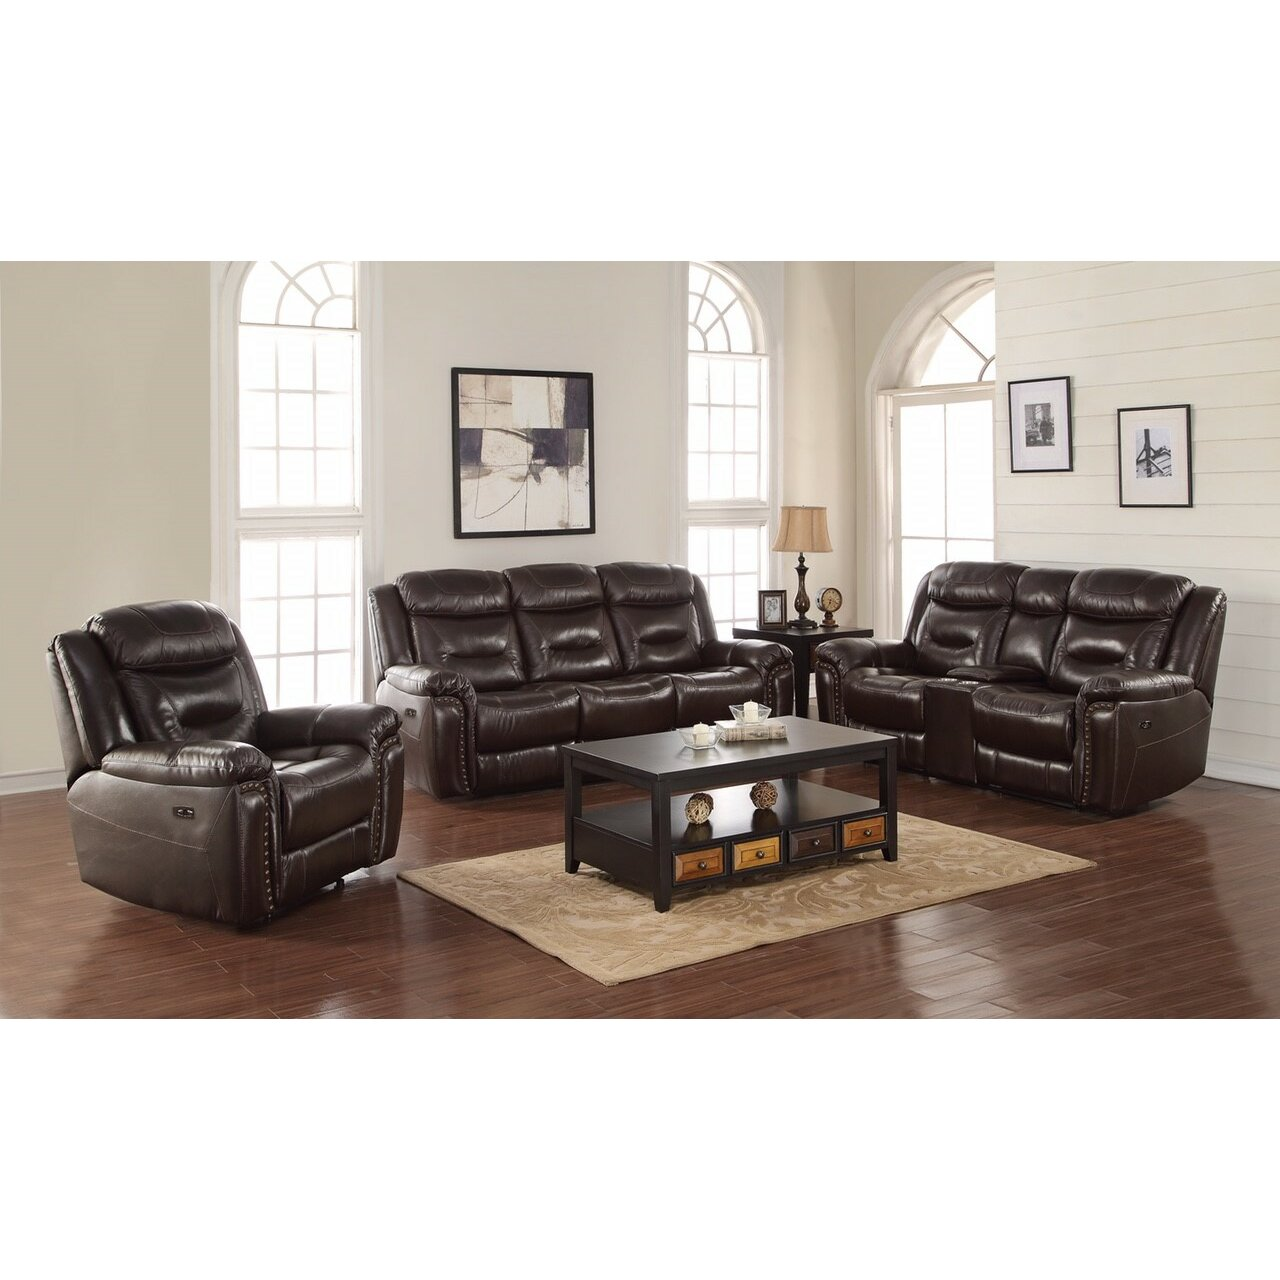 Furniture Stores Like Wayfair Tufted Living Room Furniture Foter Stores Like Home Depot Top 10